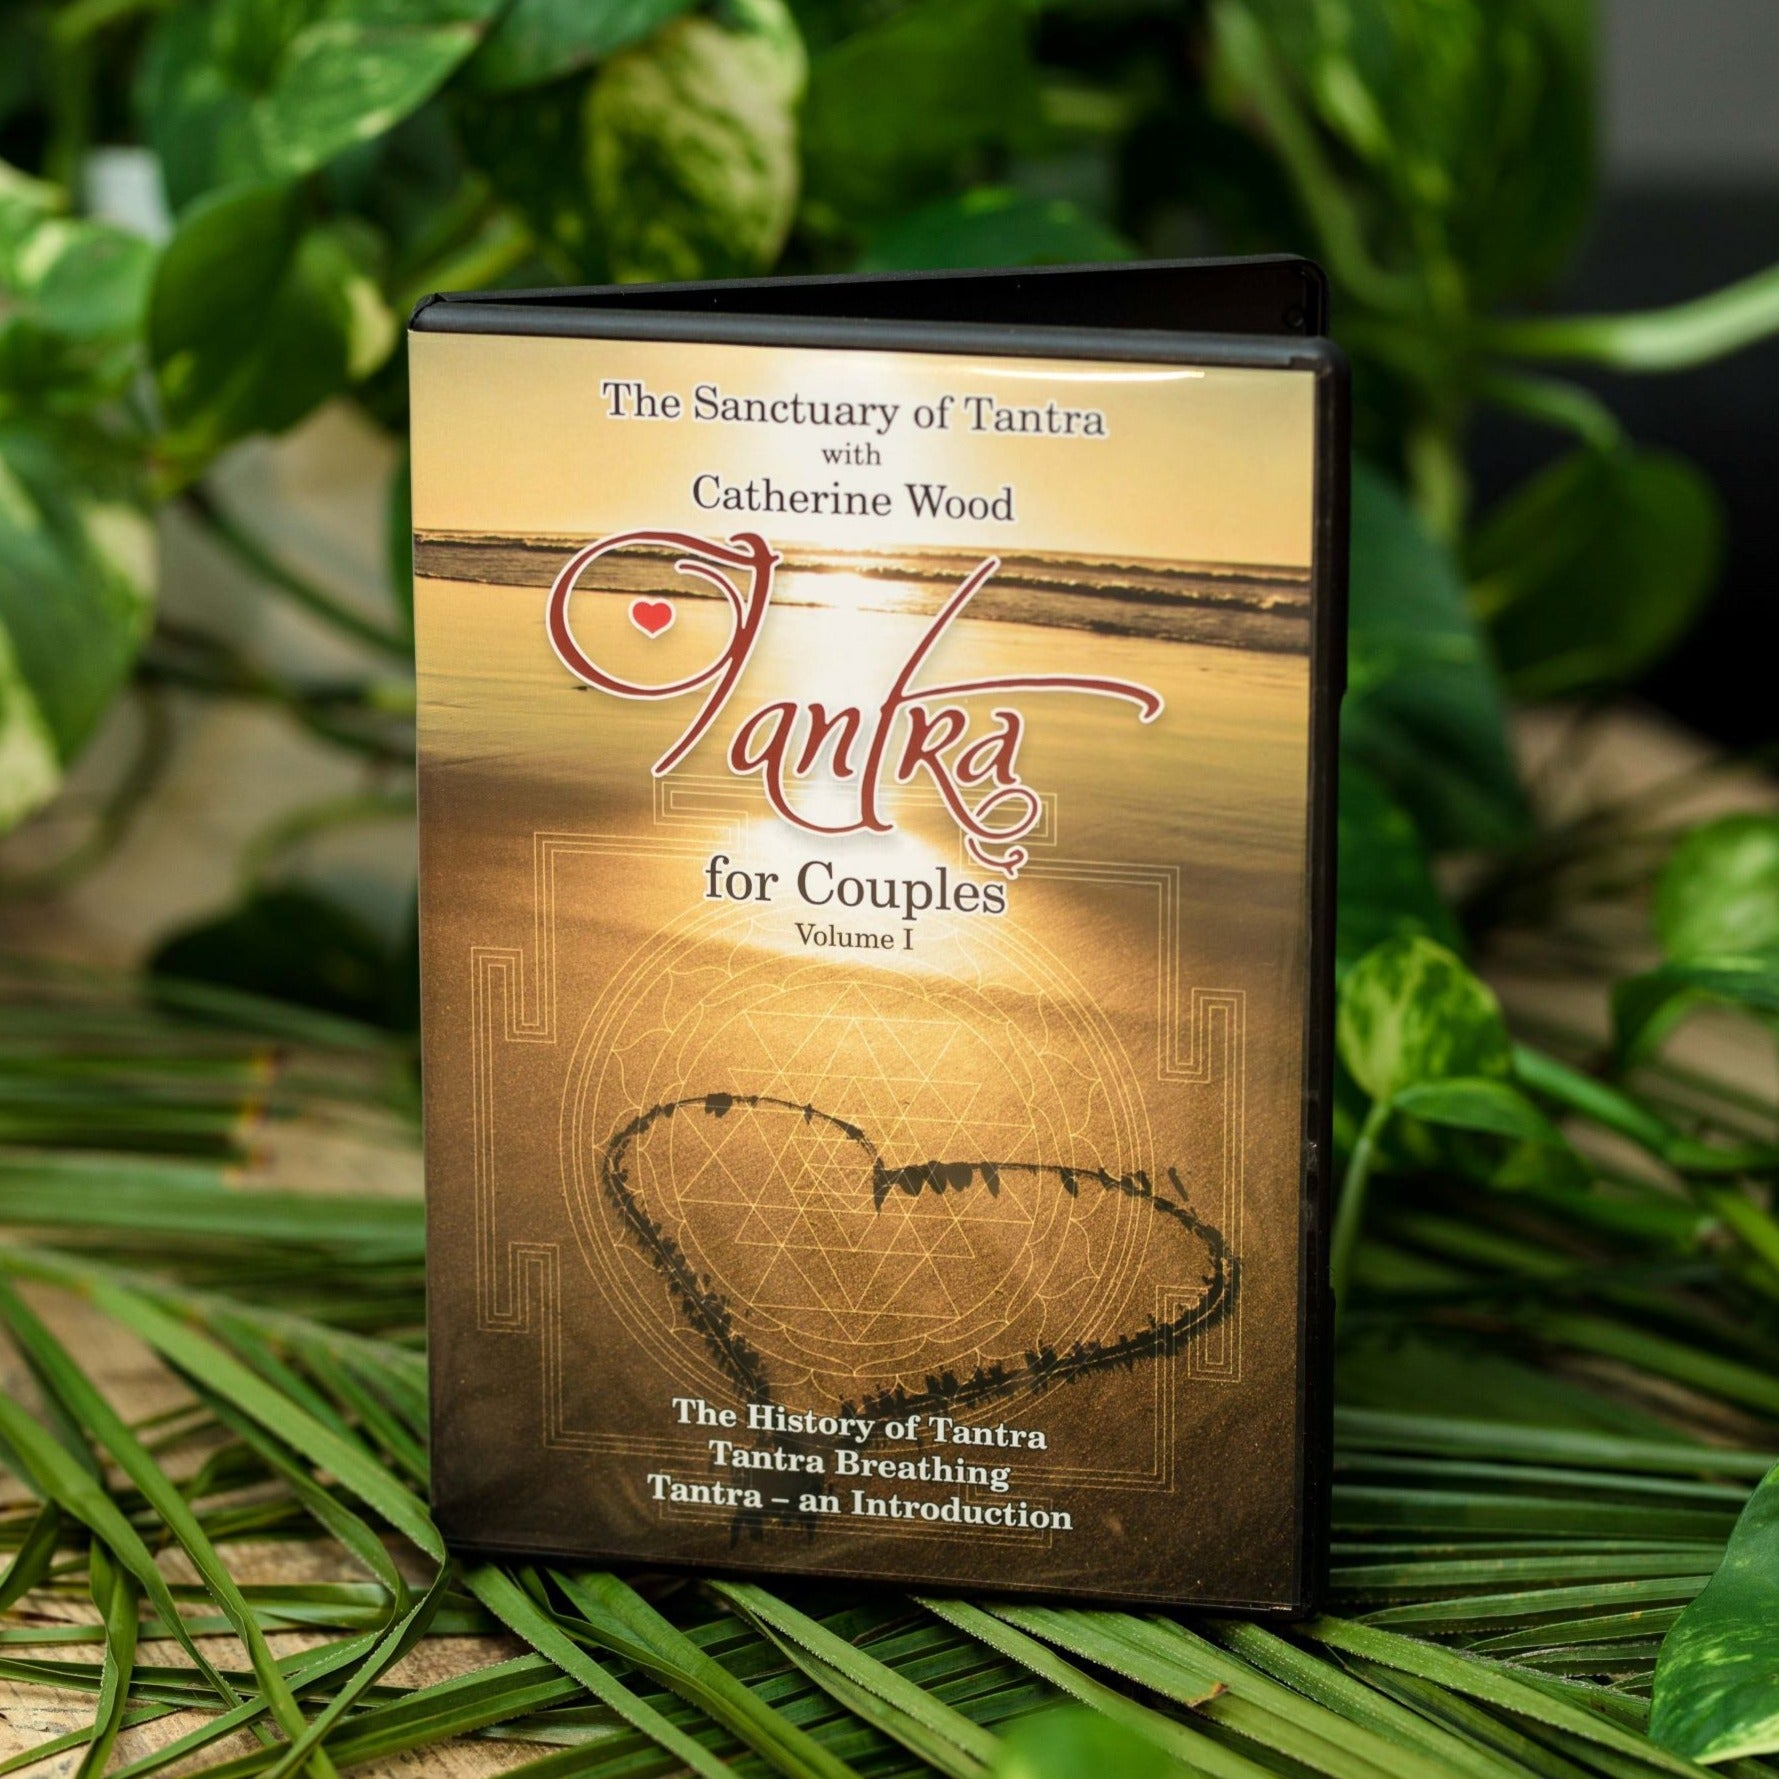 Couples DVD - An Introduction